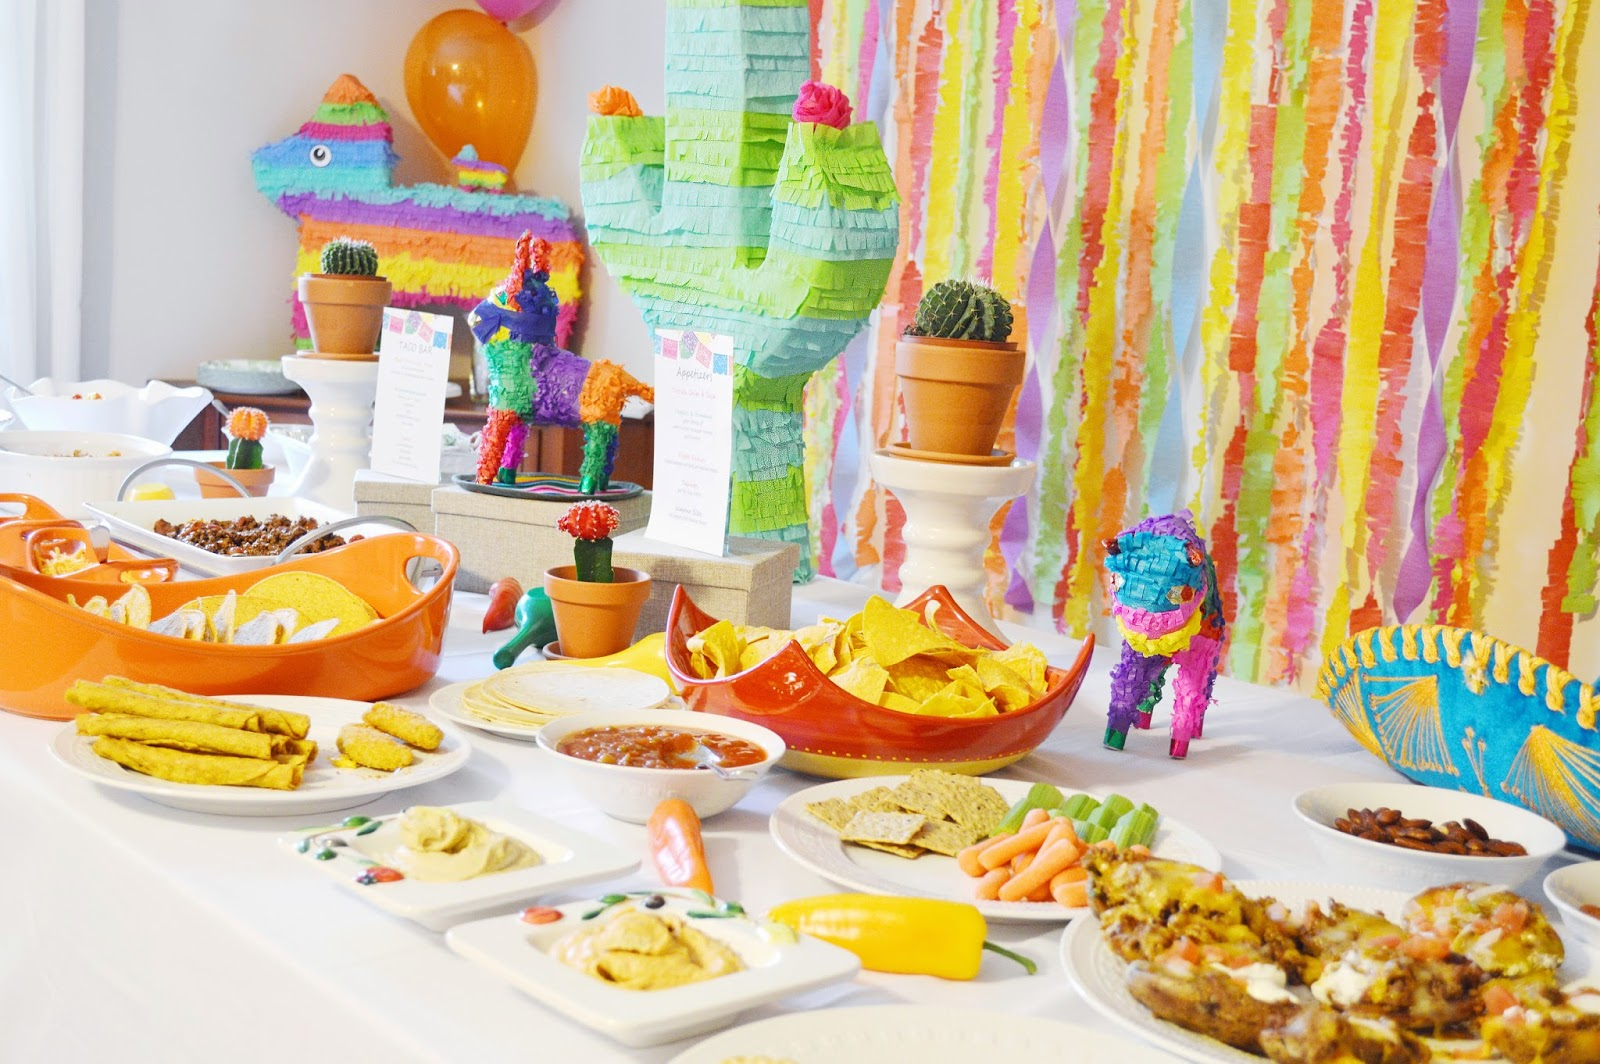 Mexican Food On A Table